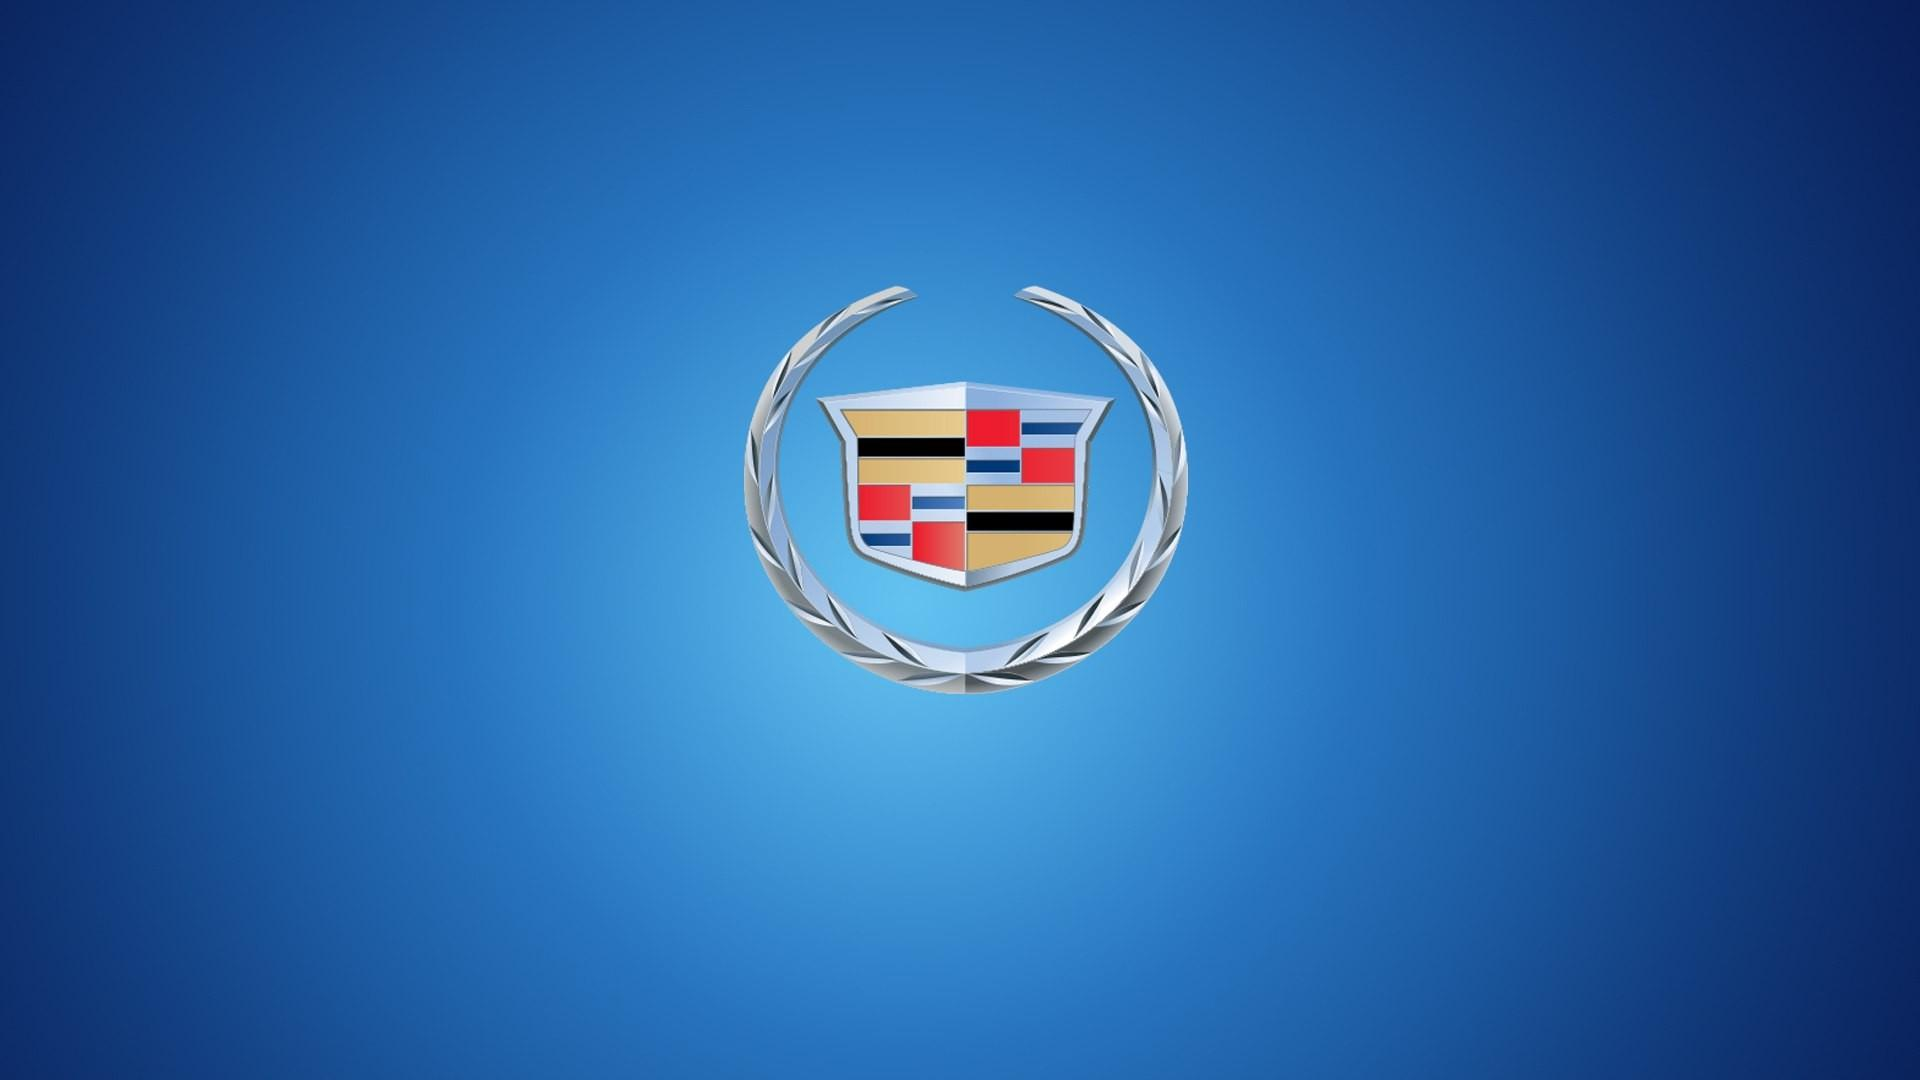 Cadillac HD Wallpapers